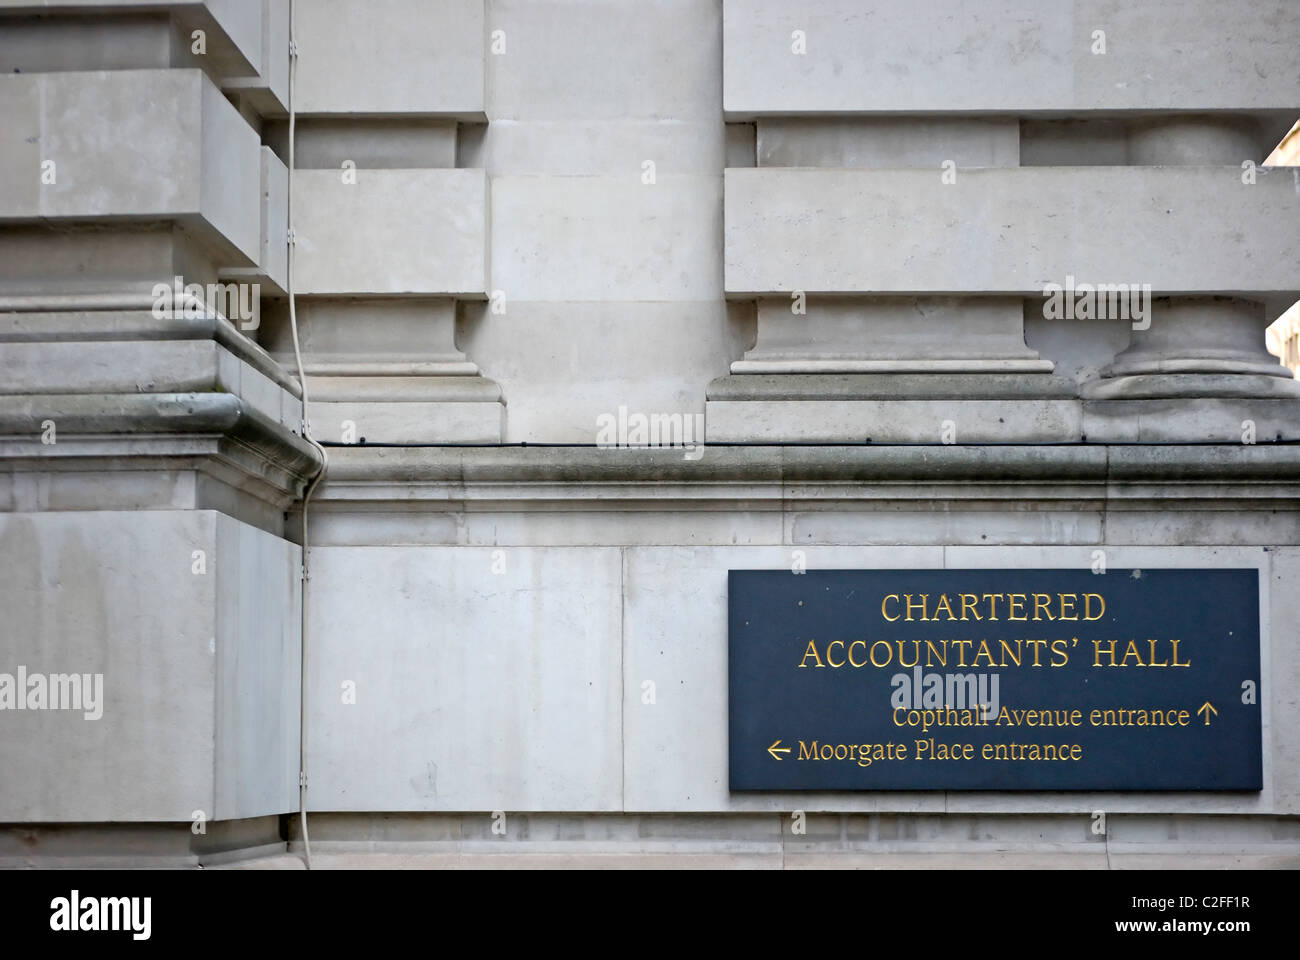 detail of the 1893 chartered accountants hall, city of london, england, designed by architect john belcher - Stock Image